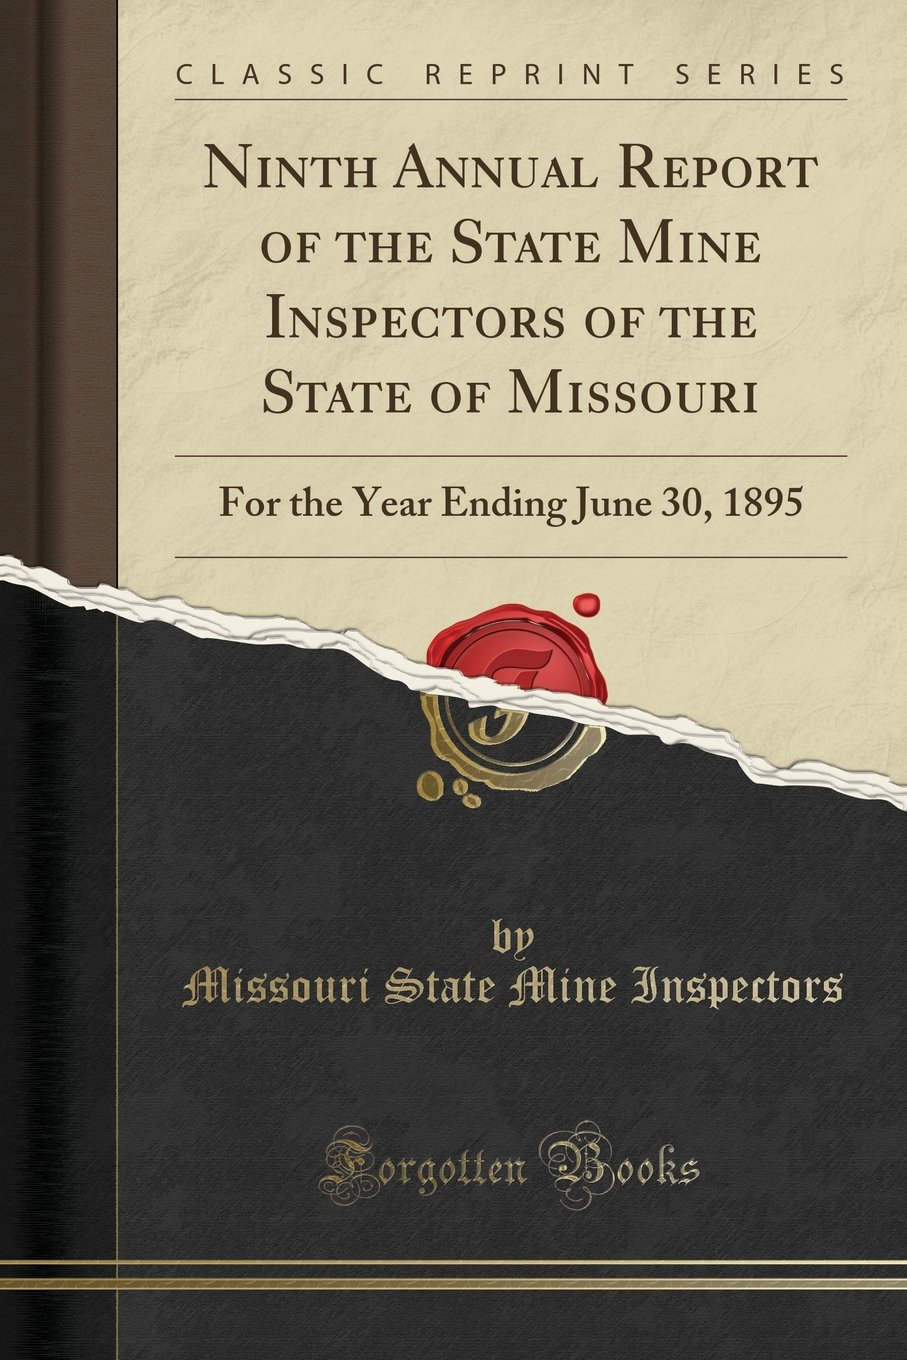 Ninth Annual Report of the State Mine Inspectors of the State of Missouri: For the Year Ending June 30, 1895 (Classic Reprint) pdf